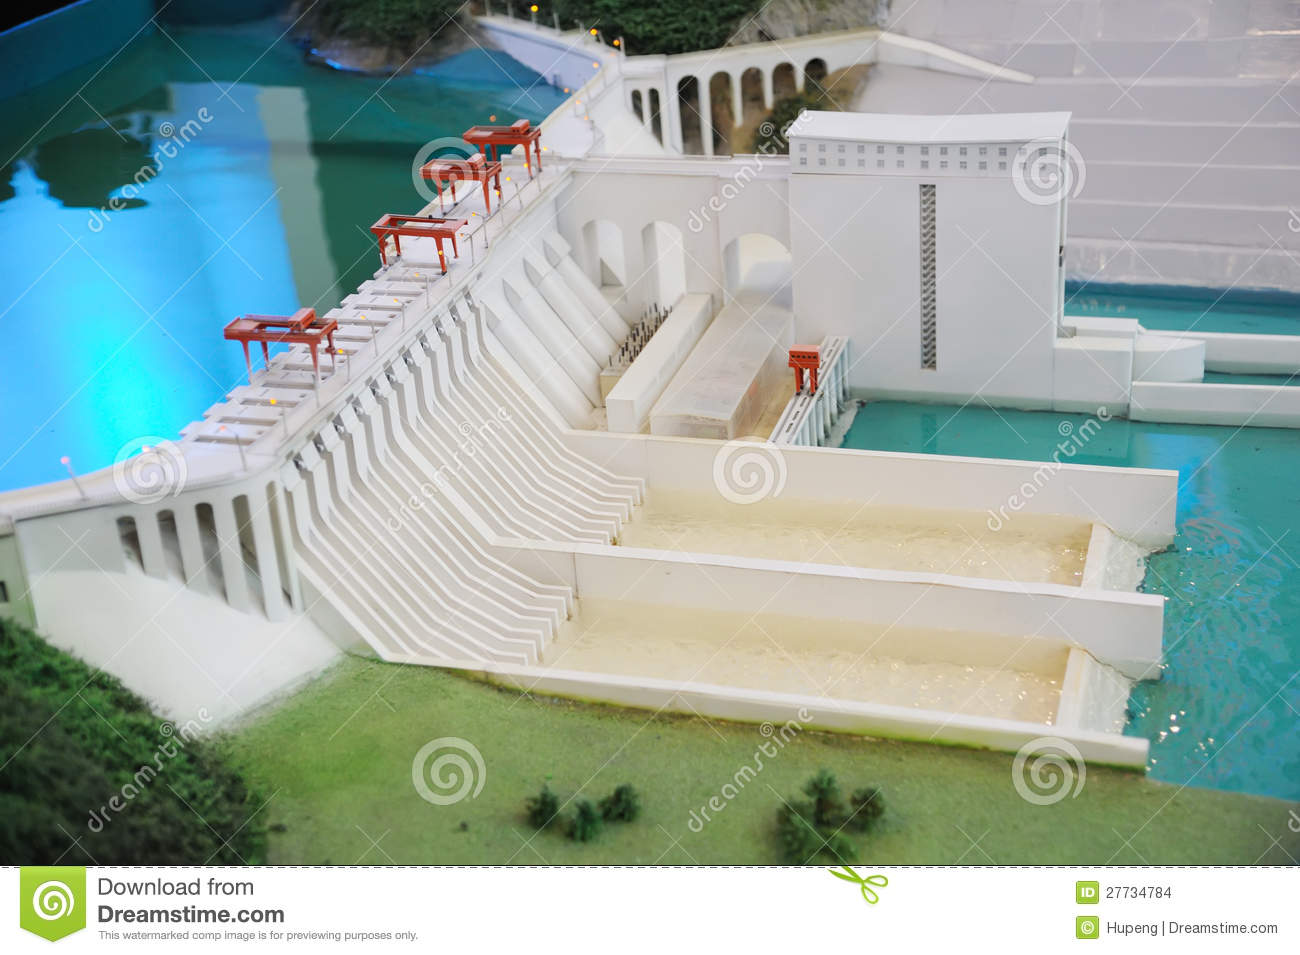 Hydroelectric Plant Model | www.imgkid.com - The Image Kid ...